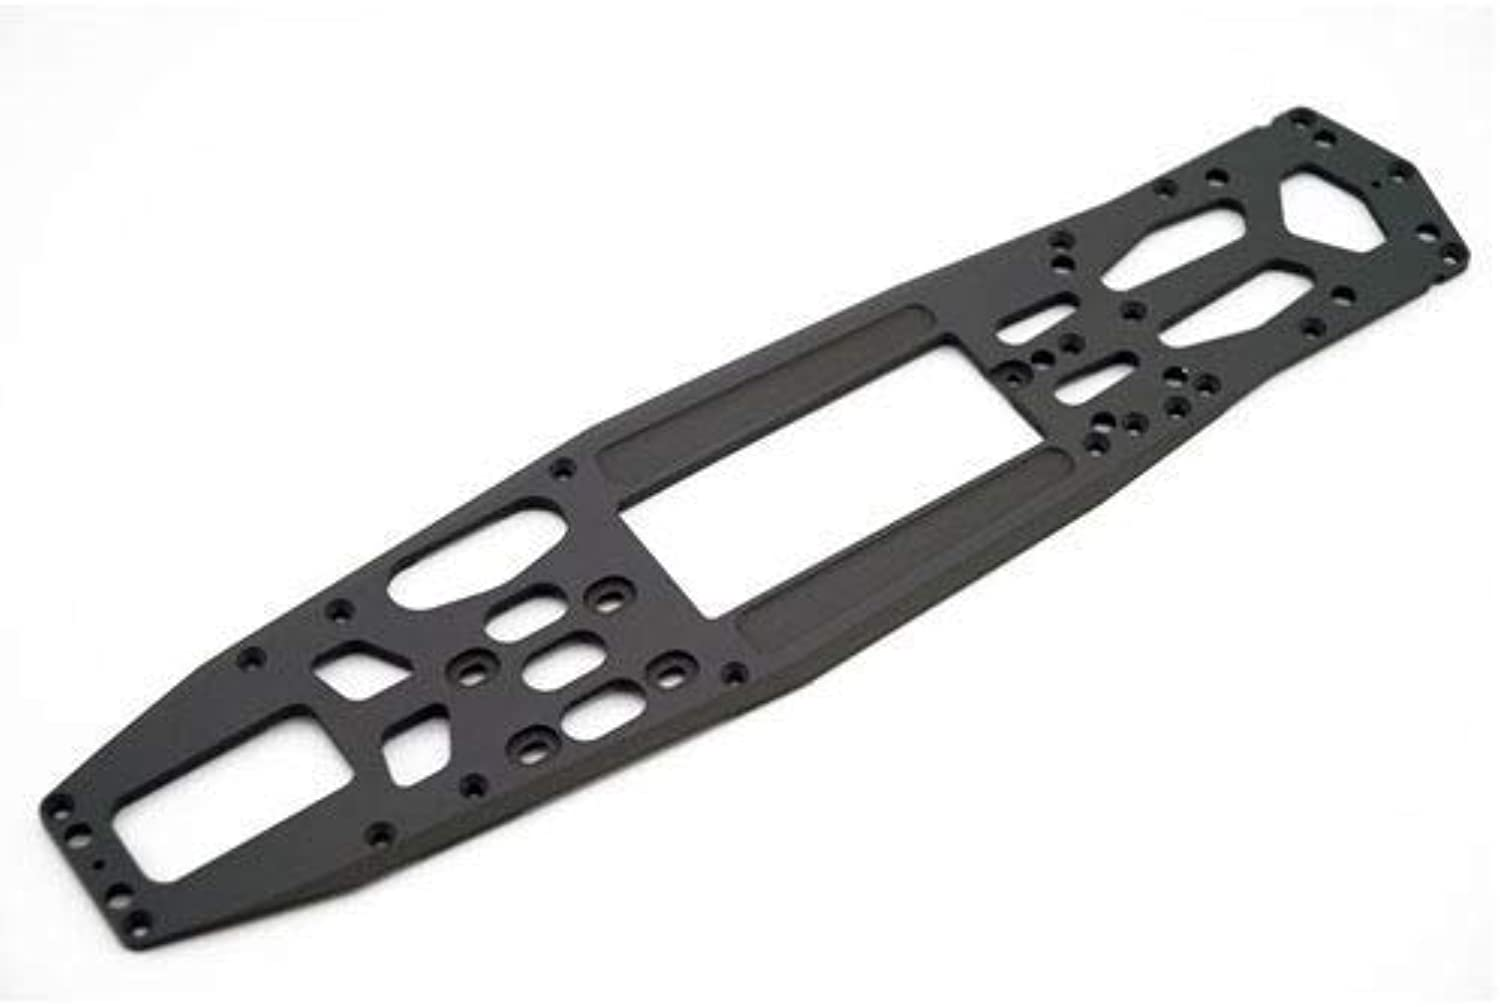 HOBAO GPX4 Chassis 4mm Cnc7075 For Pro